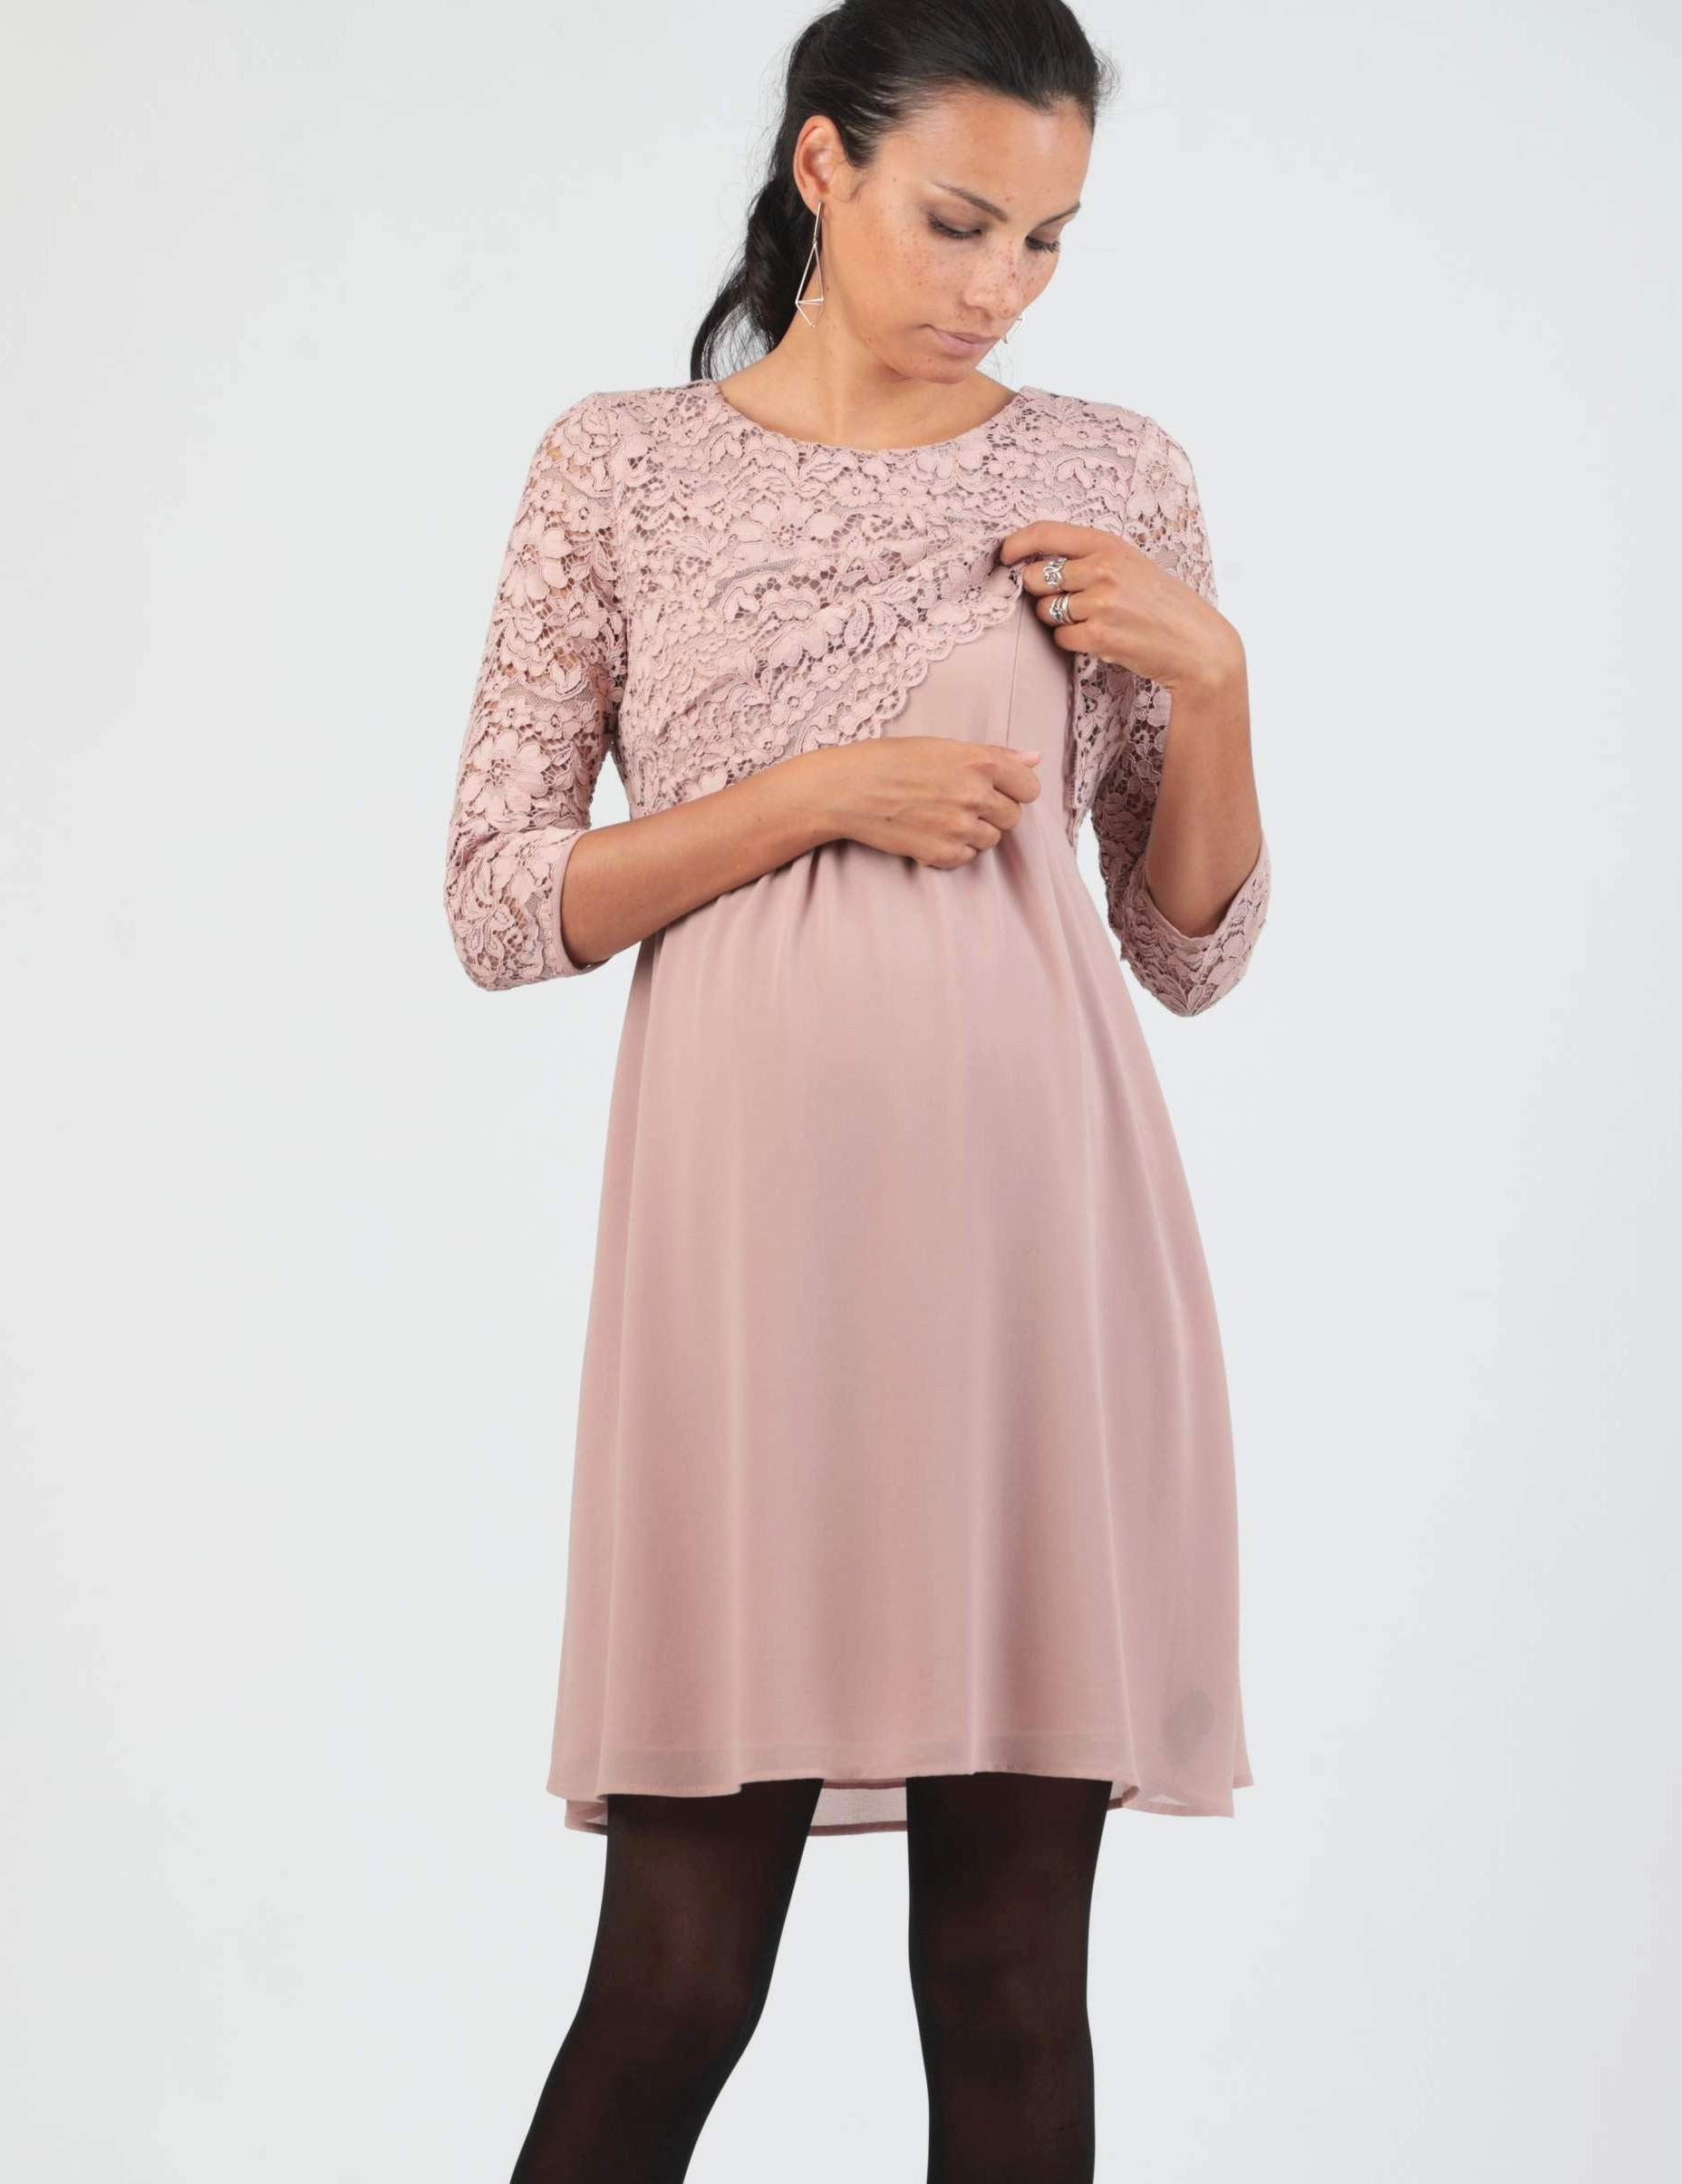 Elouise Lace Dress - Short